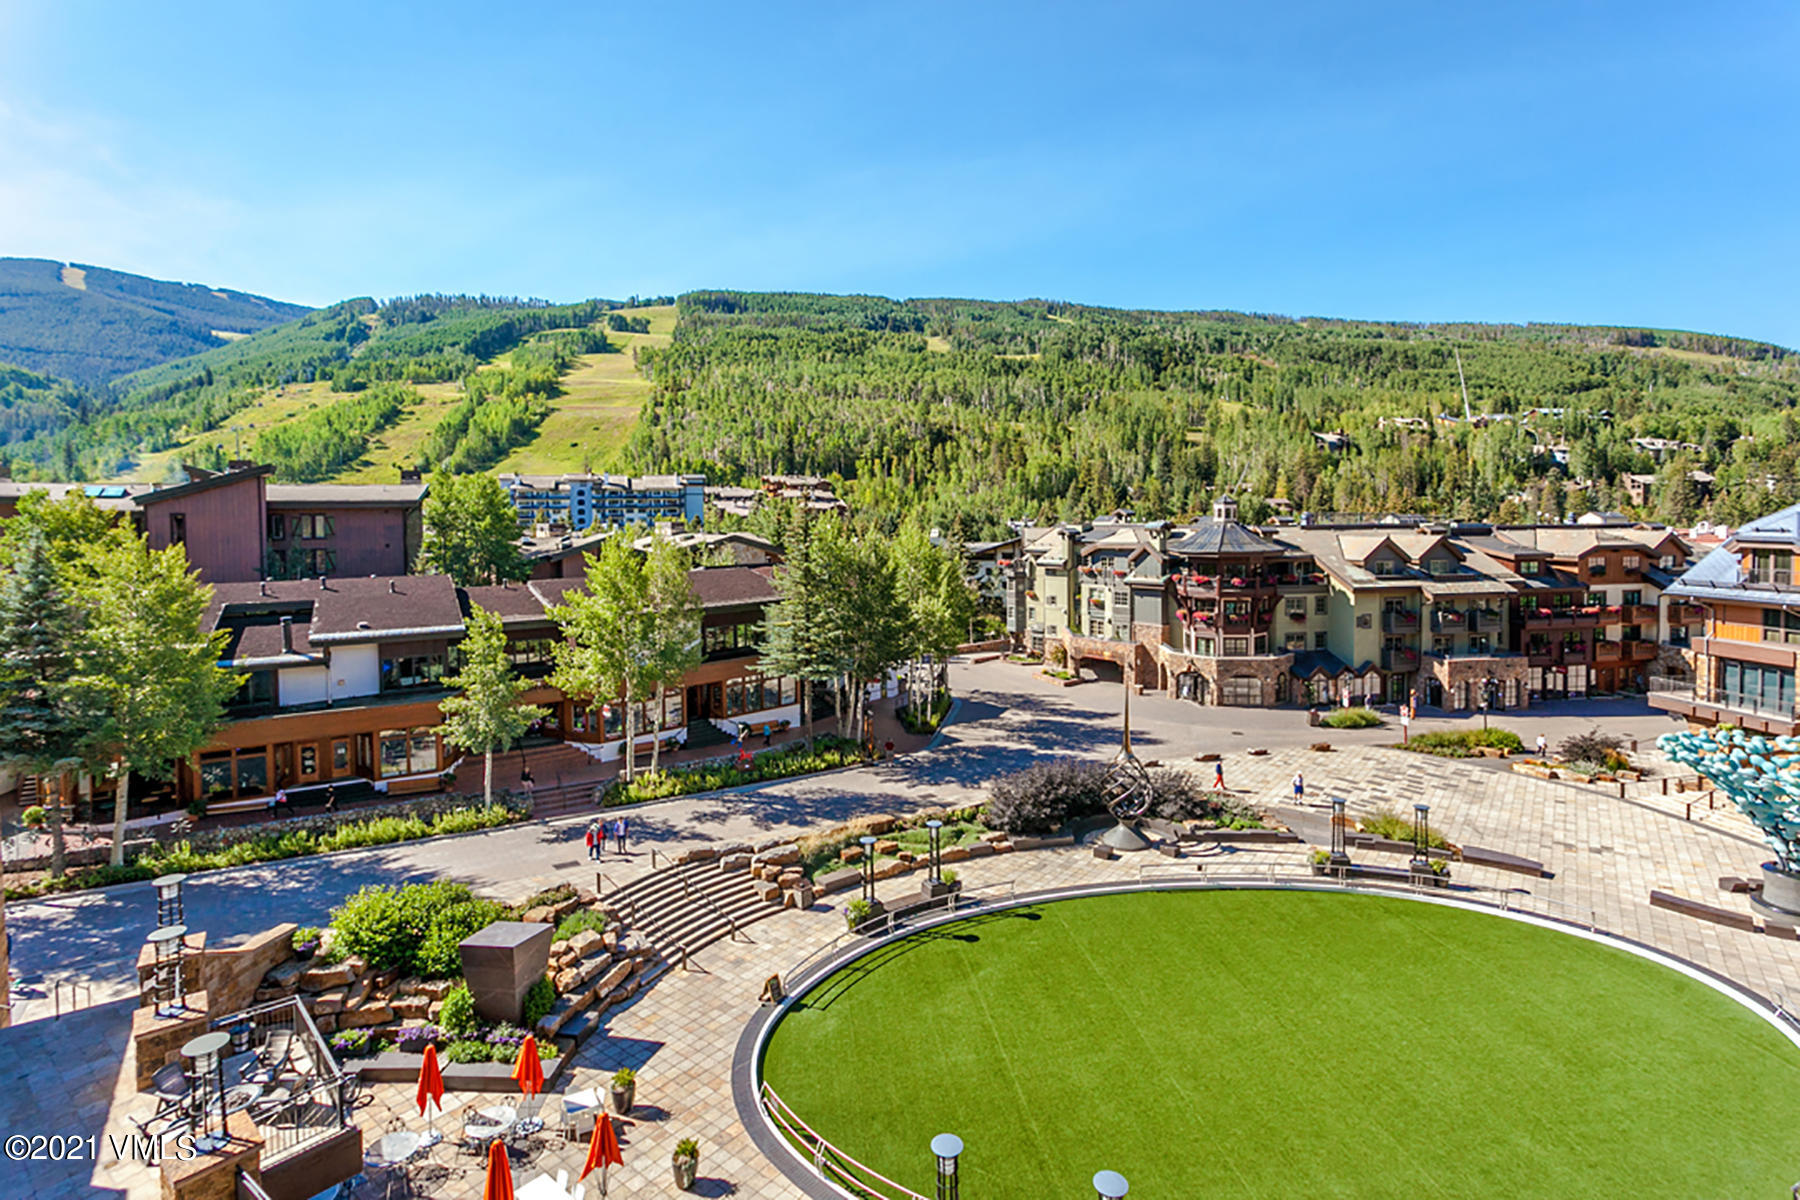 The Solaris Residences are one of the most luxurious, Full service Residential Style Mountain Resort Properties in the Country. Enjoy the Best of the Best, right in the Heart of Vail Village.  Residence #5C West is a generously sized 2-Bedroom + Den Residence with private outdoor patio. Onsite Amenities Include: Indoor Heated Pool, Fitness Center, World-Class Dining at Matsuhisa, Ice Skating Rink, Bowling Alley, Valet Service, Shuttle Service, Underground Heated Parking, Ski Valet and Storage at the Base of Vail Mountain, and 24-hour Concierge.